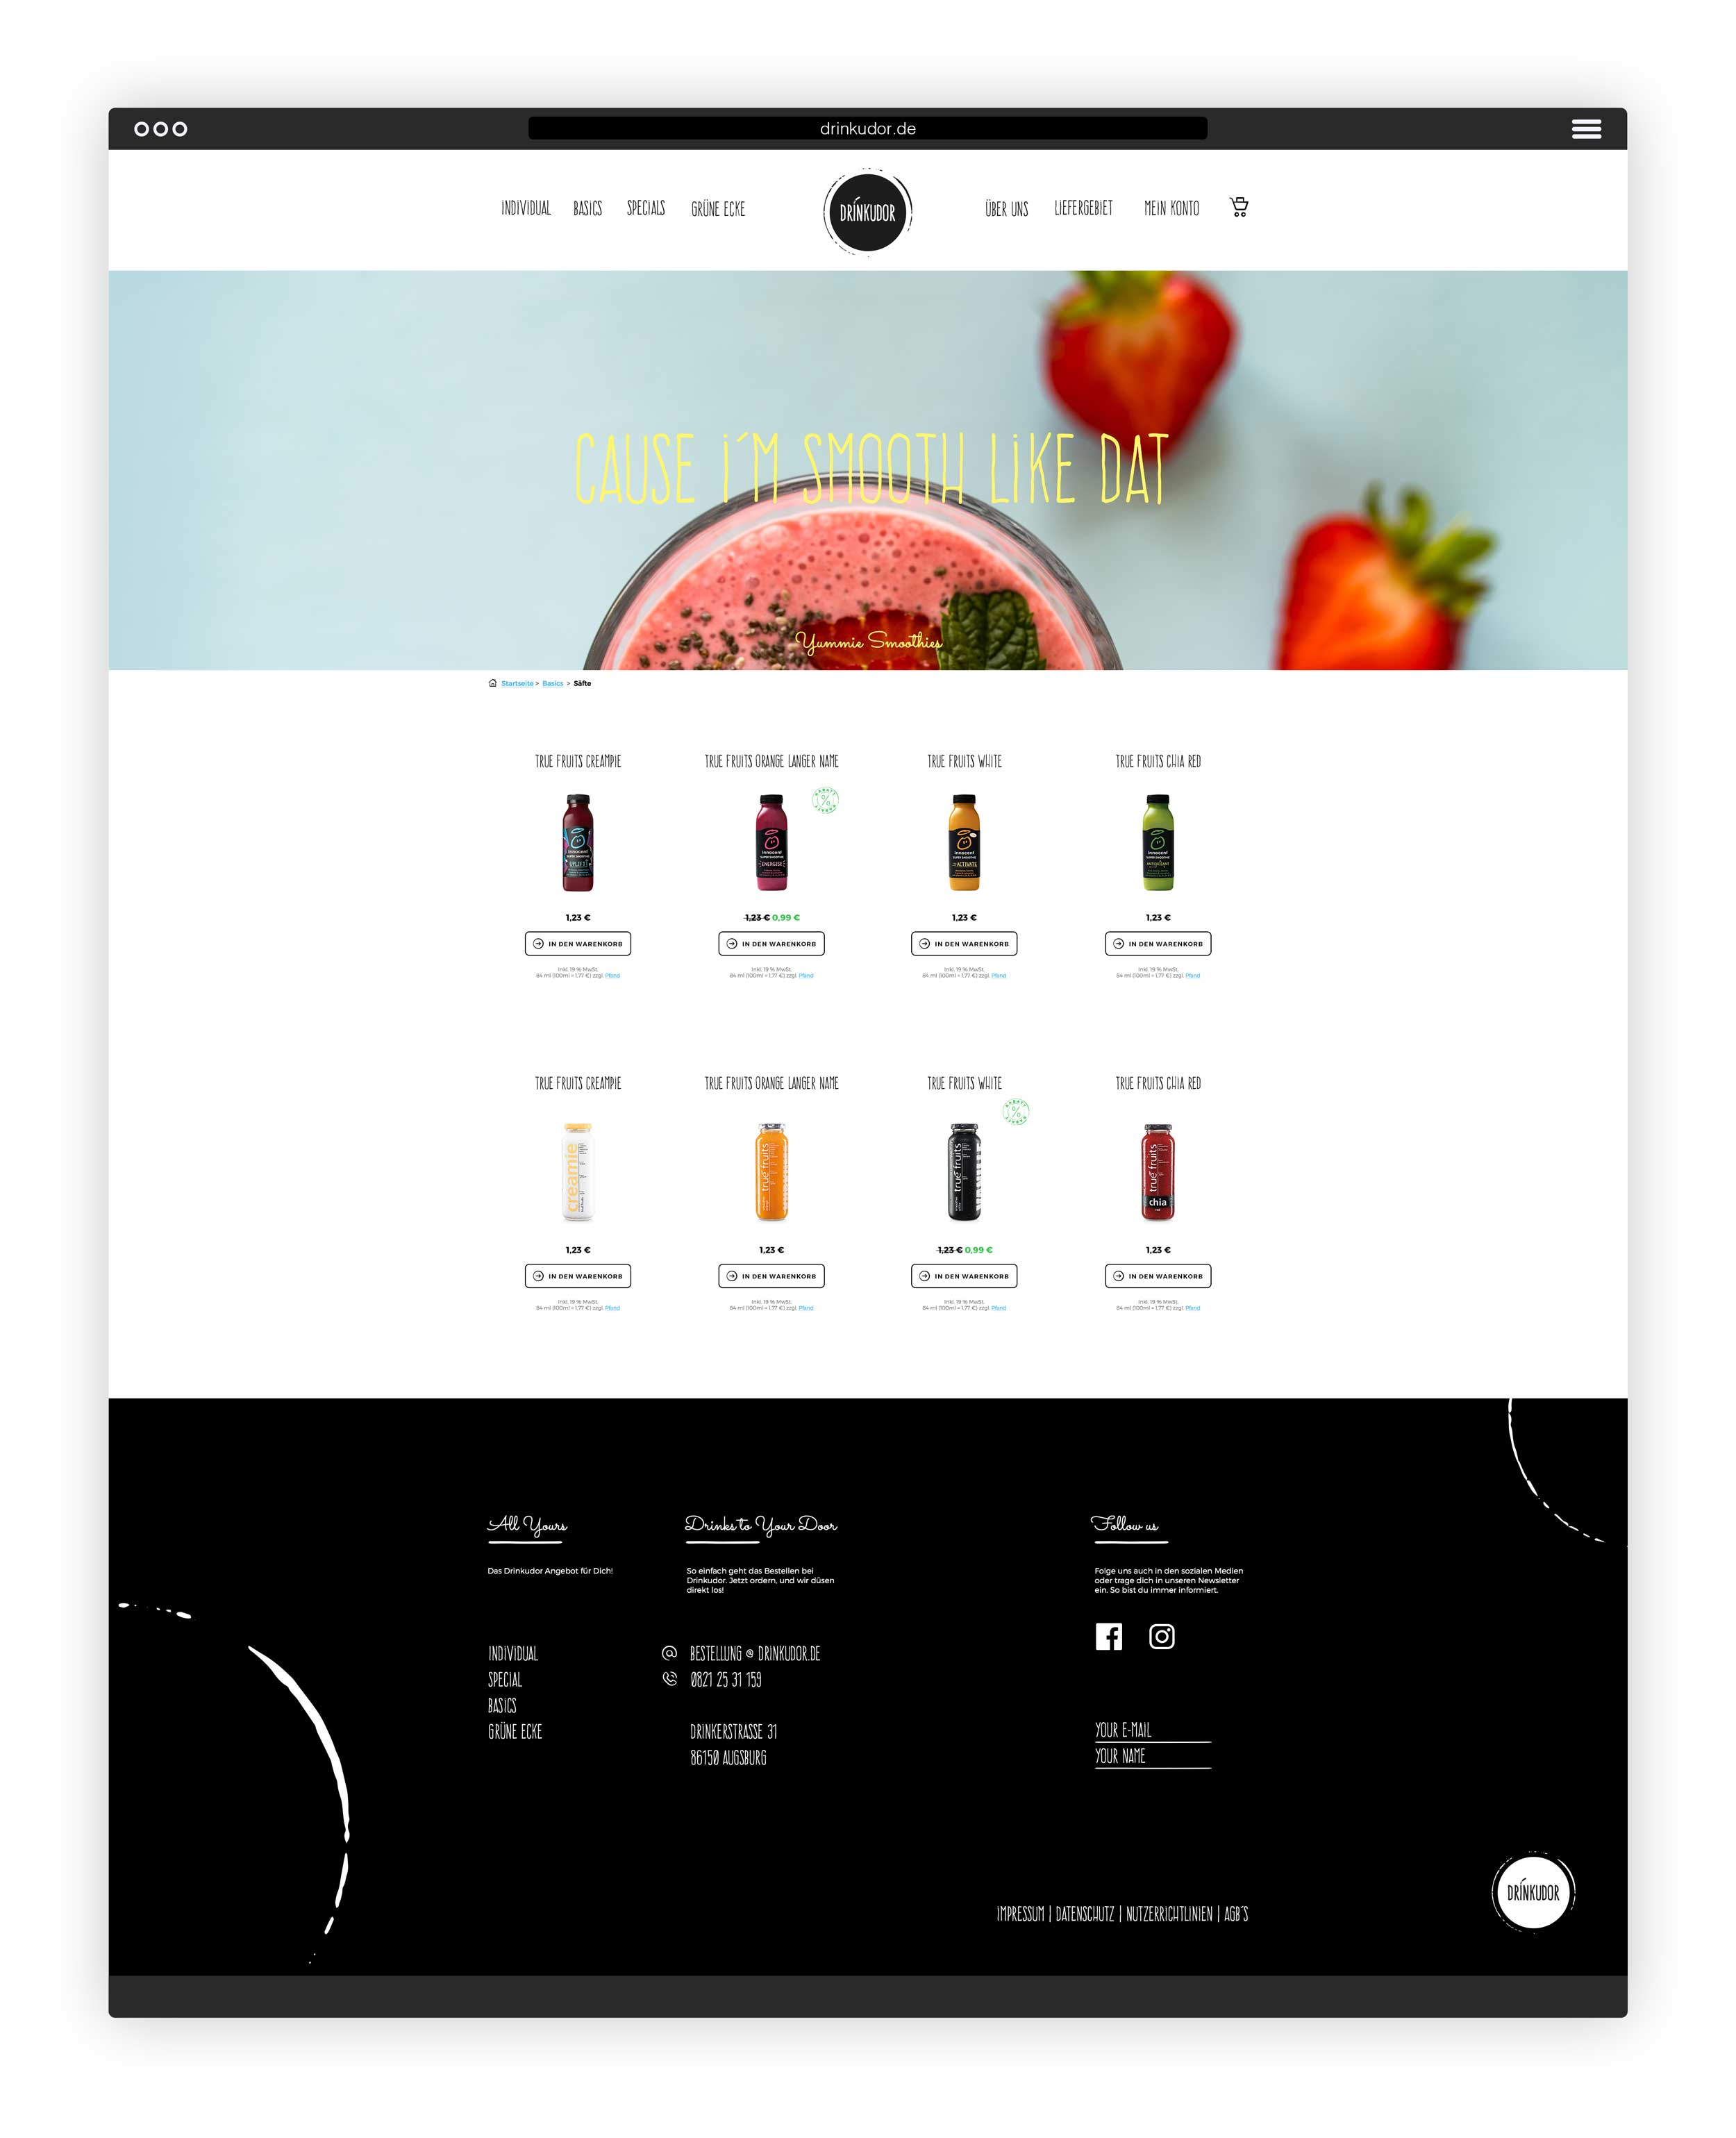 blockundstift-drinkudor-portfolio-augsburg-design-website-drinkurator-smoothies